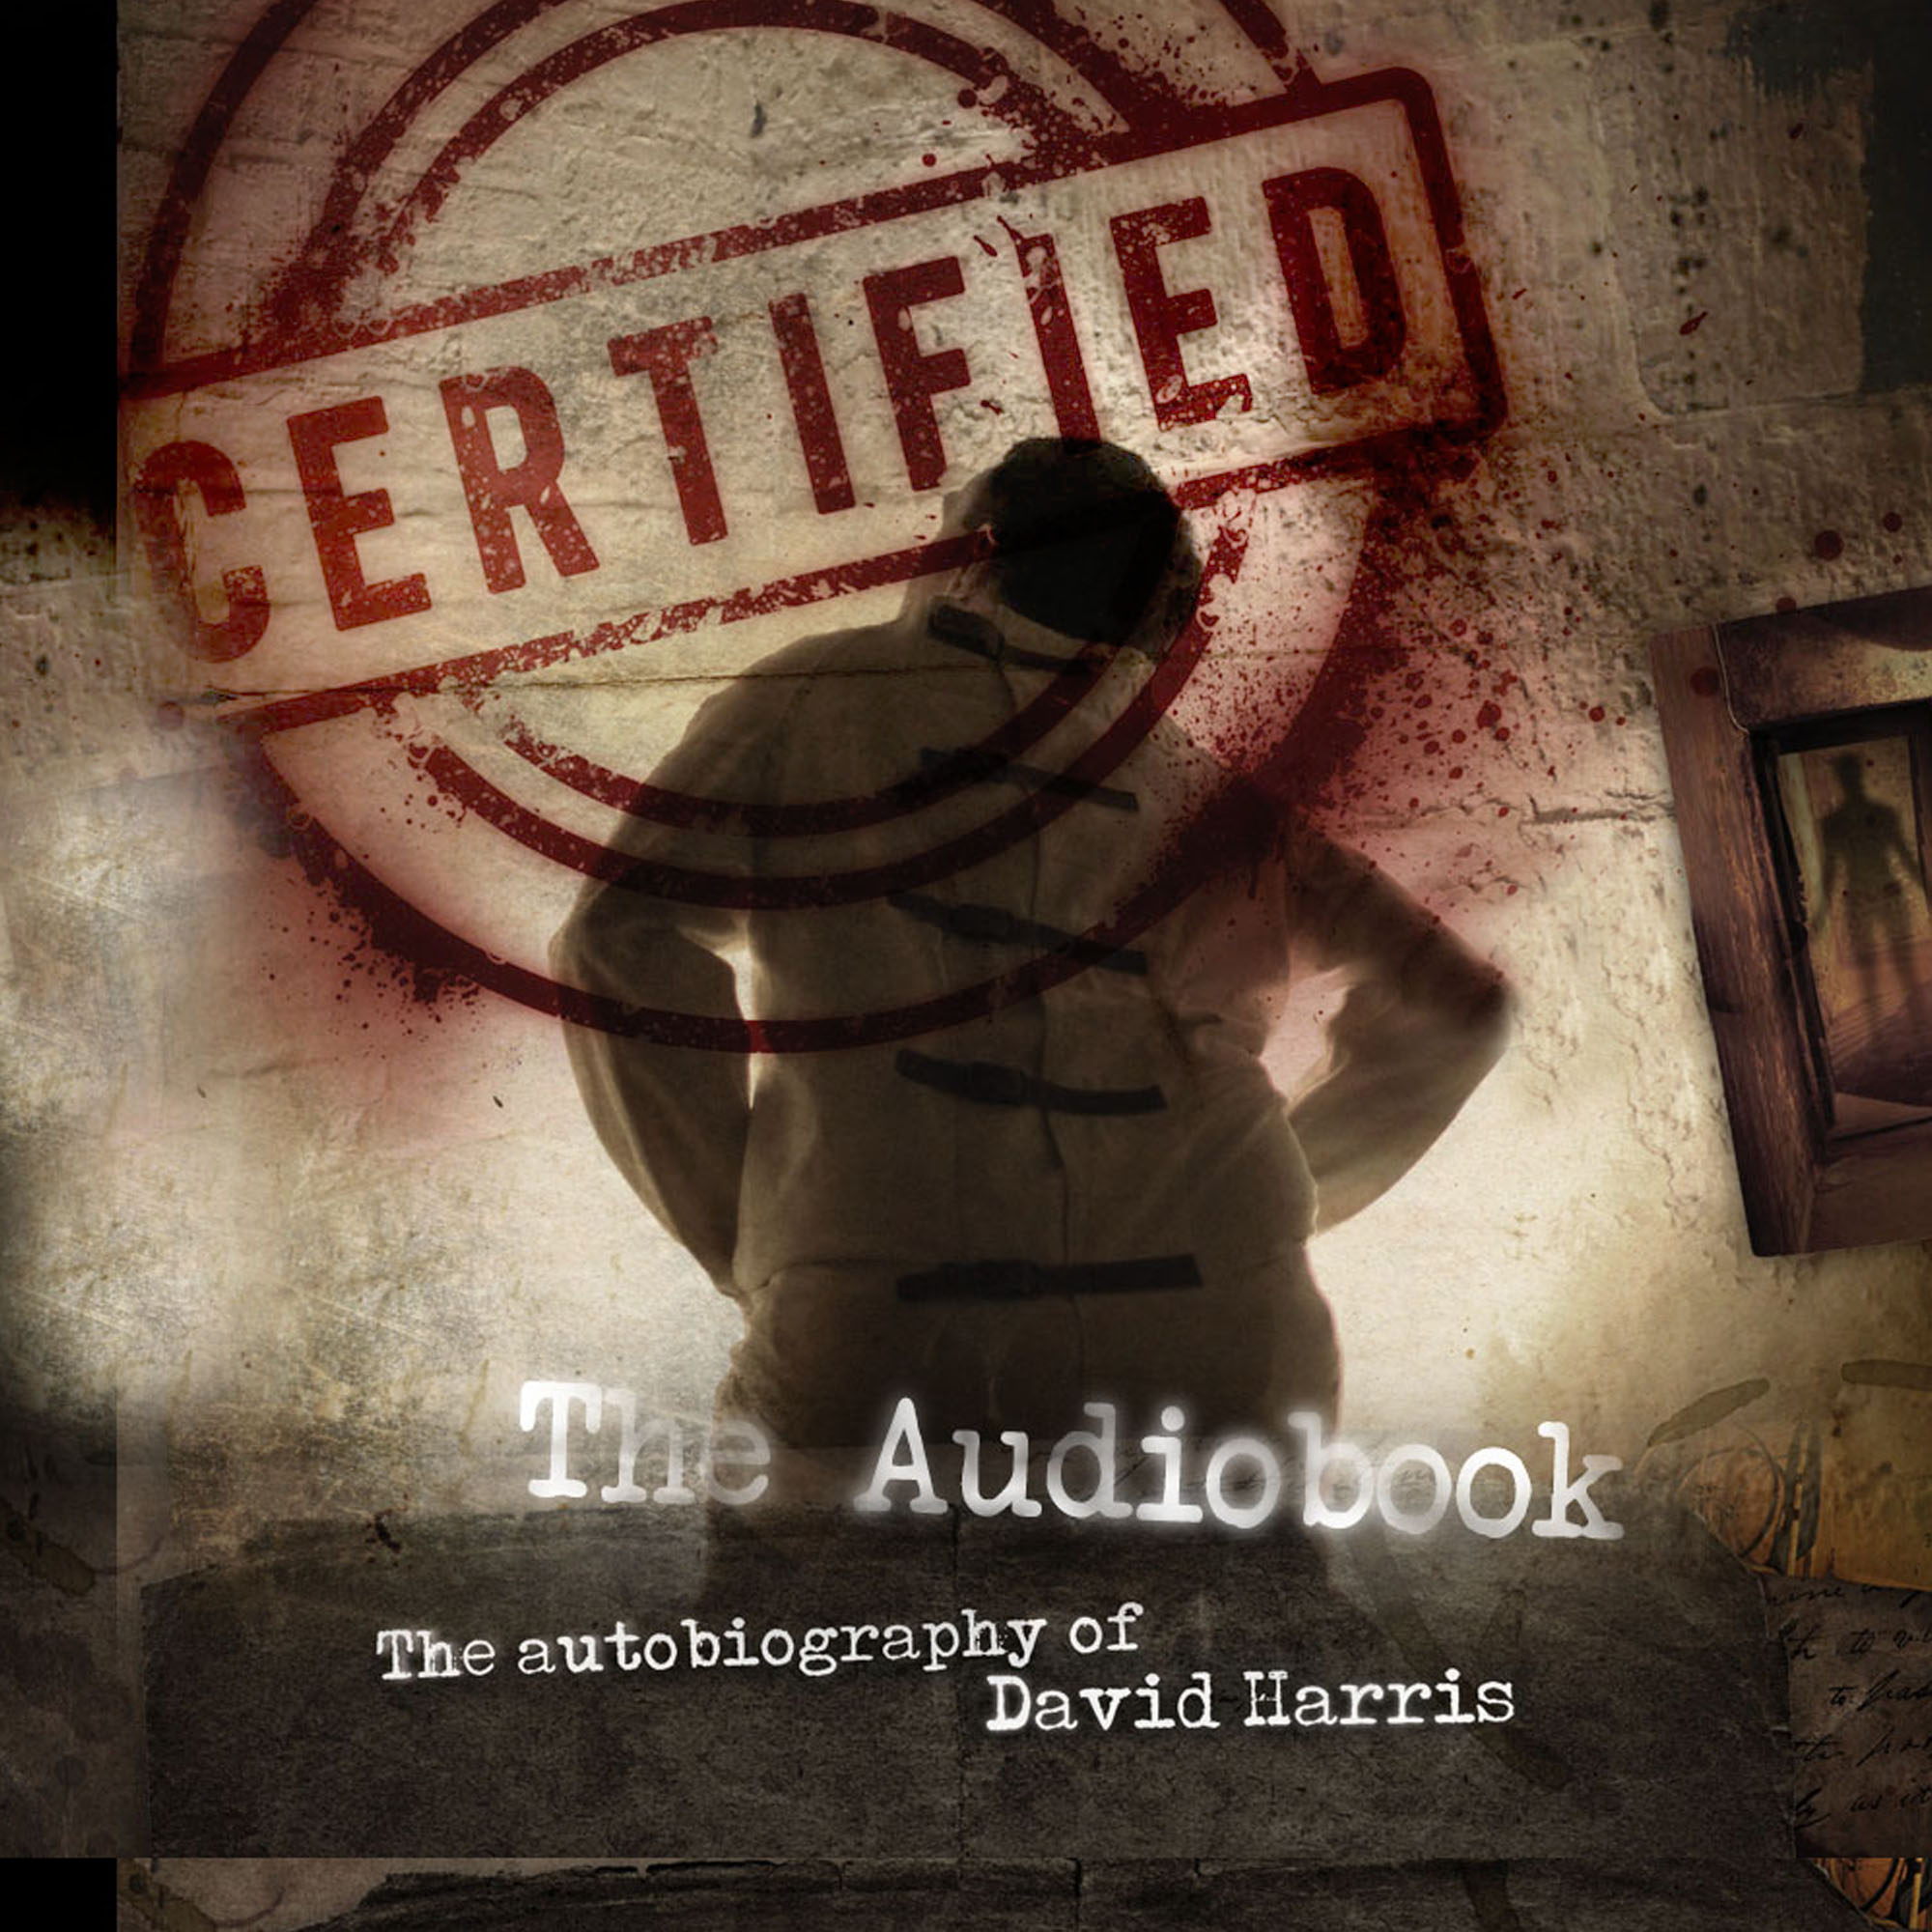 Certified - The True Story of David Harris